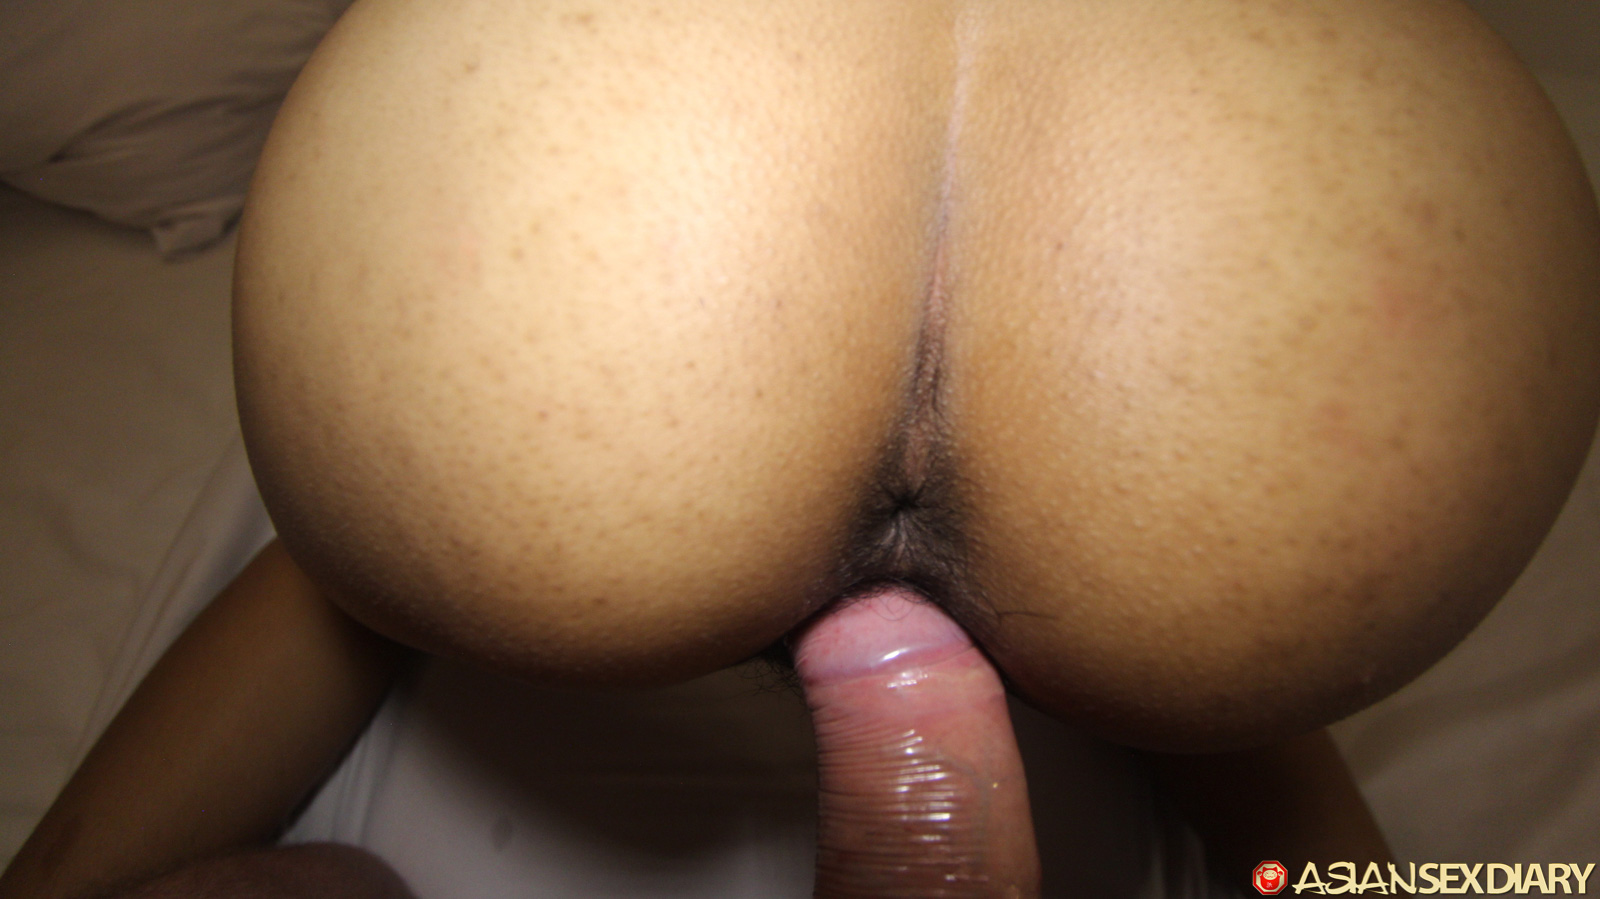 Girl Site About Girls Love Relationships Body Life Sex